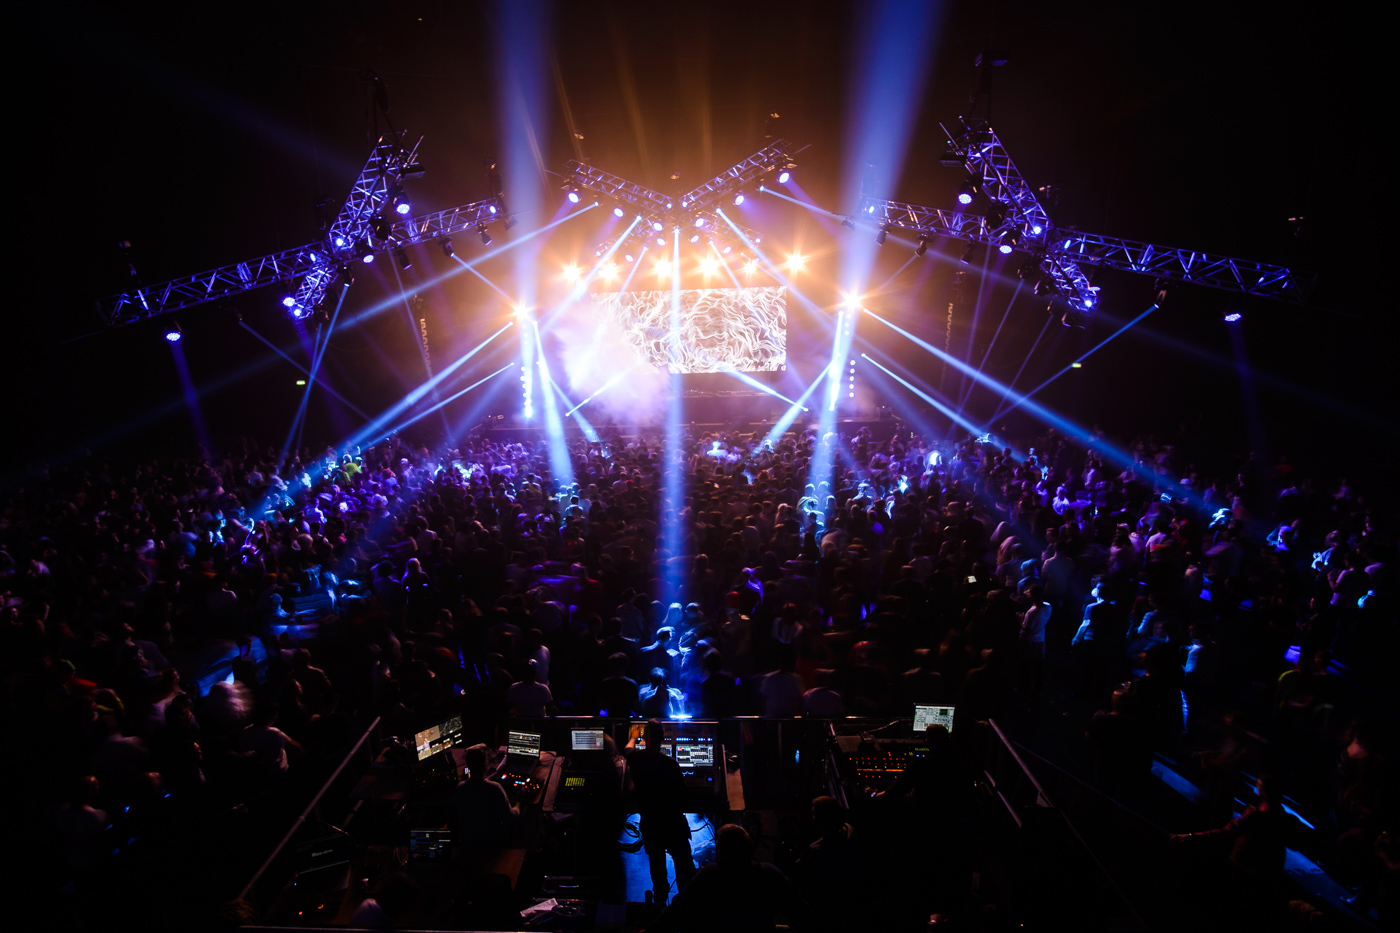 winterparty-at-3arena-dublin-30-10-2016-by-sean-smyth-51-of-53